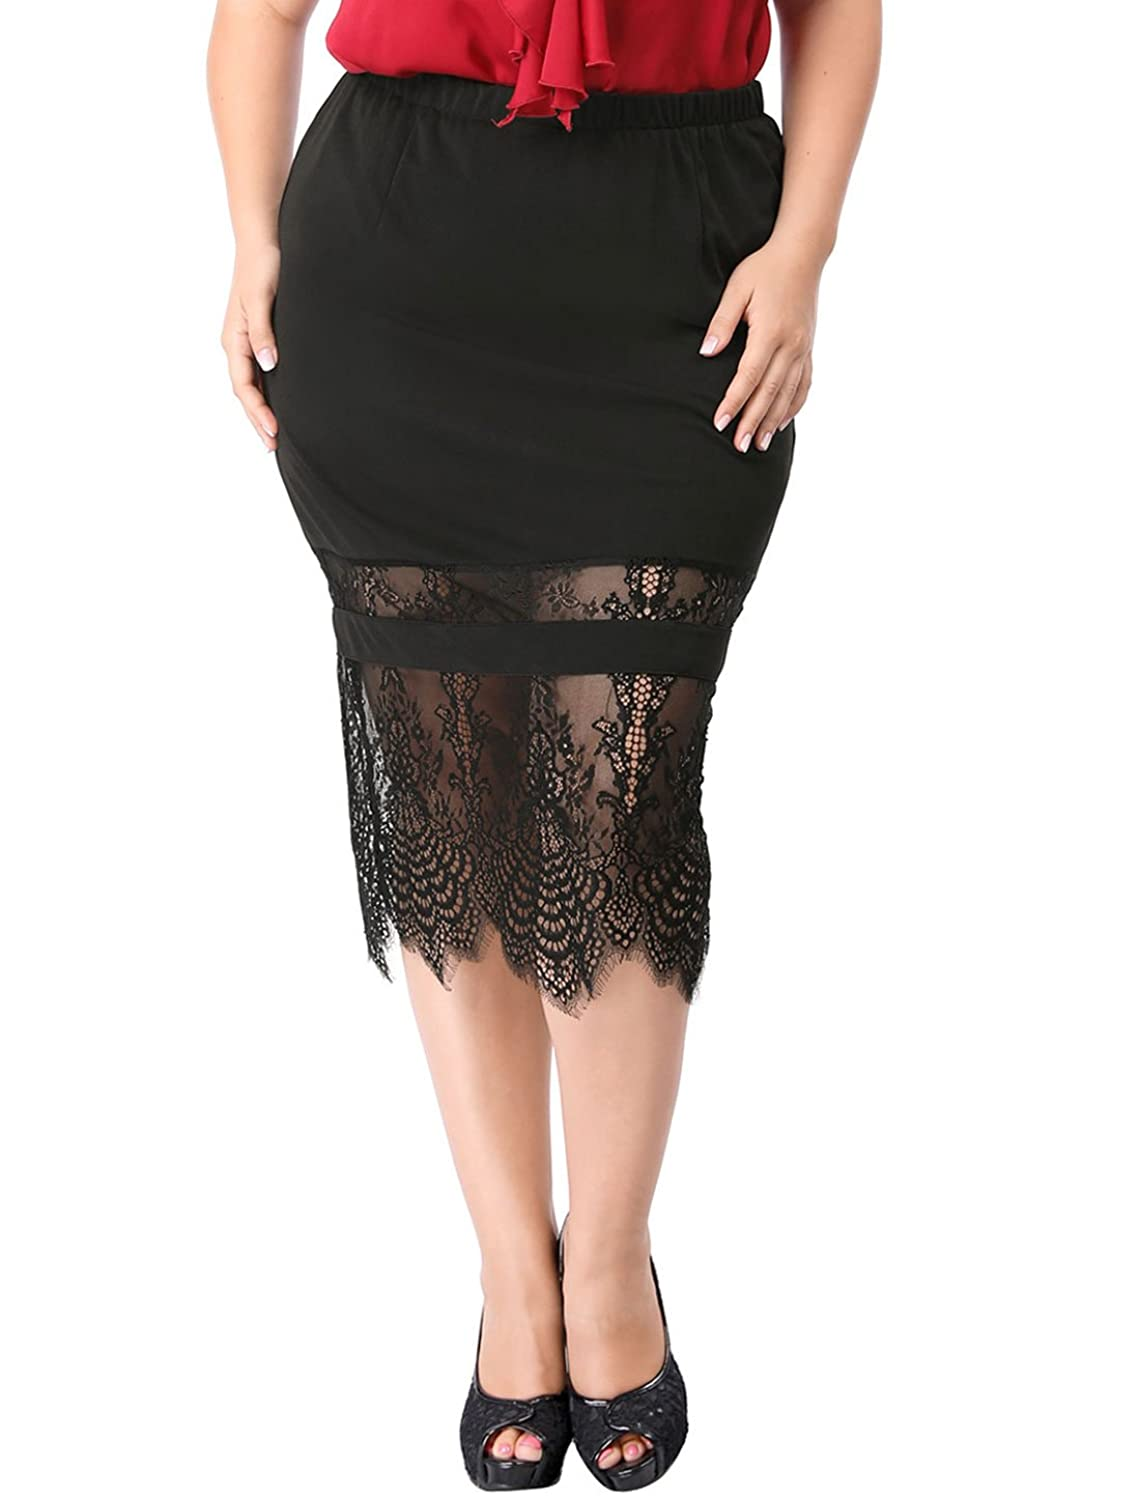 Agnes Orinda Women's Plus Size Lace Panel Elastic Waist Slim Fit Skirt